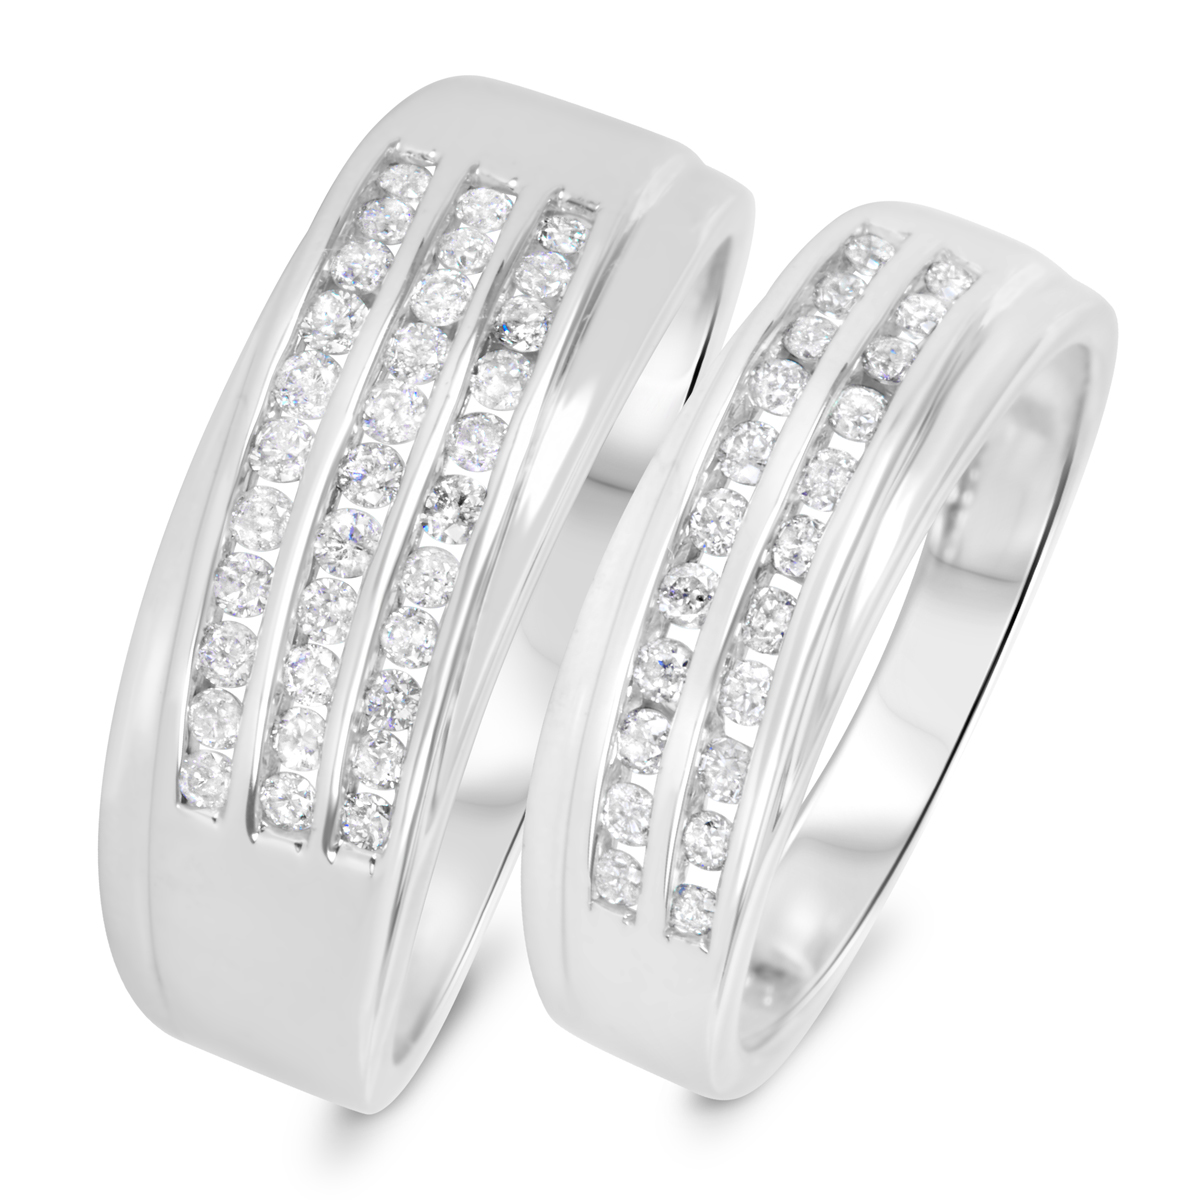 tw diamond his and hers wedding band set 10k white gold my trio rings wb511w10k - Wedding Ring Set His And Hers